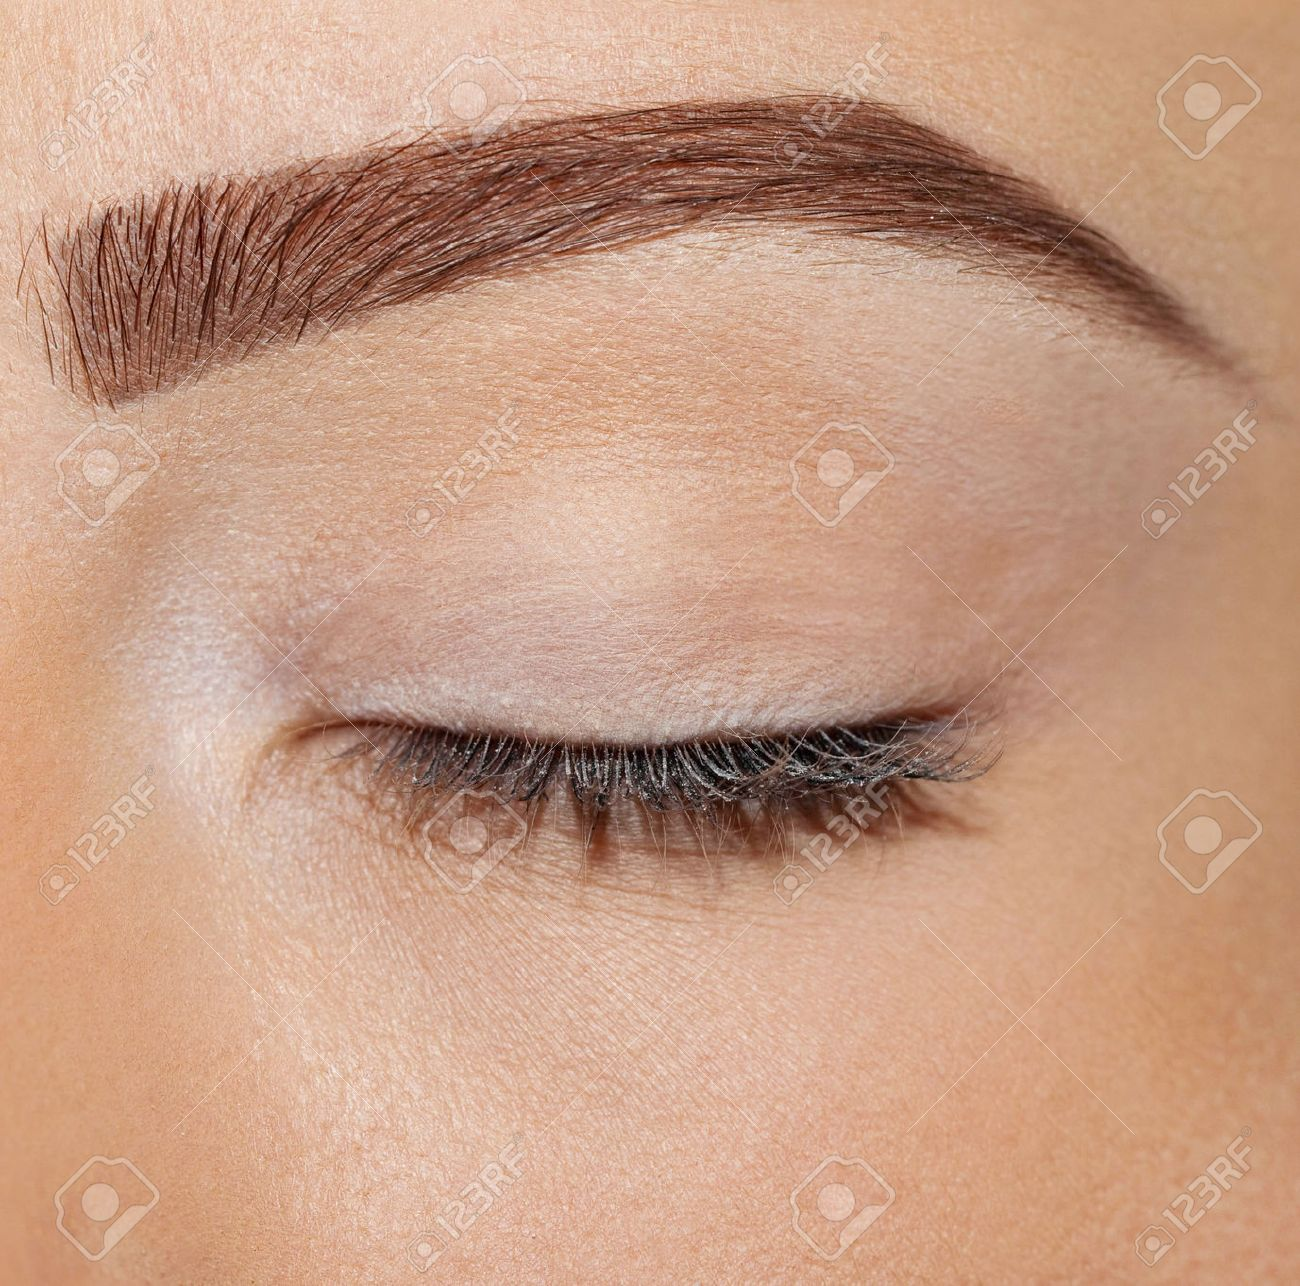 Close Up Eyes Without Makeup Stock Photo Picture And Royalty Free